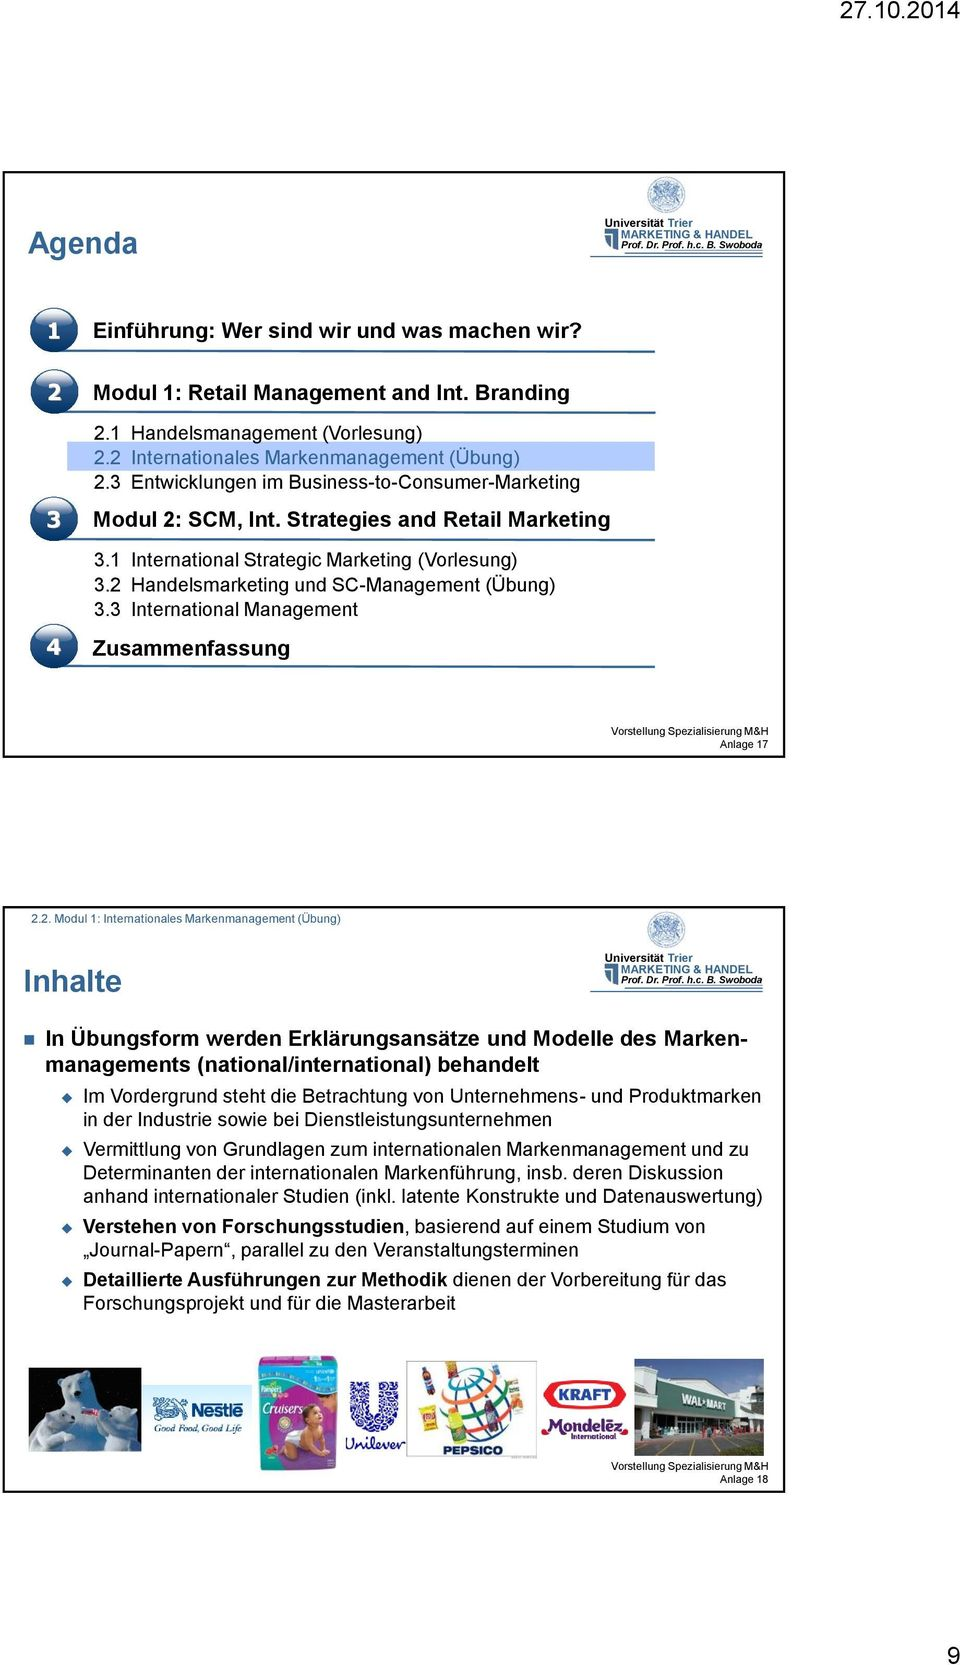 2 Handelsmarketing und SC-Management (Übung) 3.3 International Management 4 Zusammenfassung Anlage 17 2.2. Modul 1: Internationales Markenmanagement (Übung) Inhalte In Übungsform werden